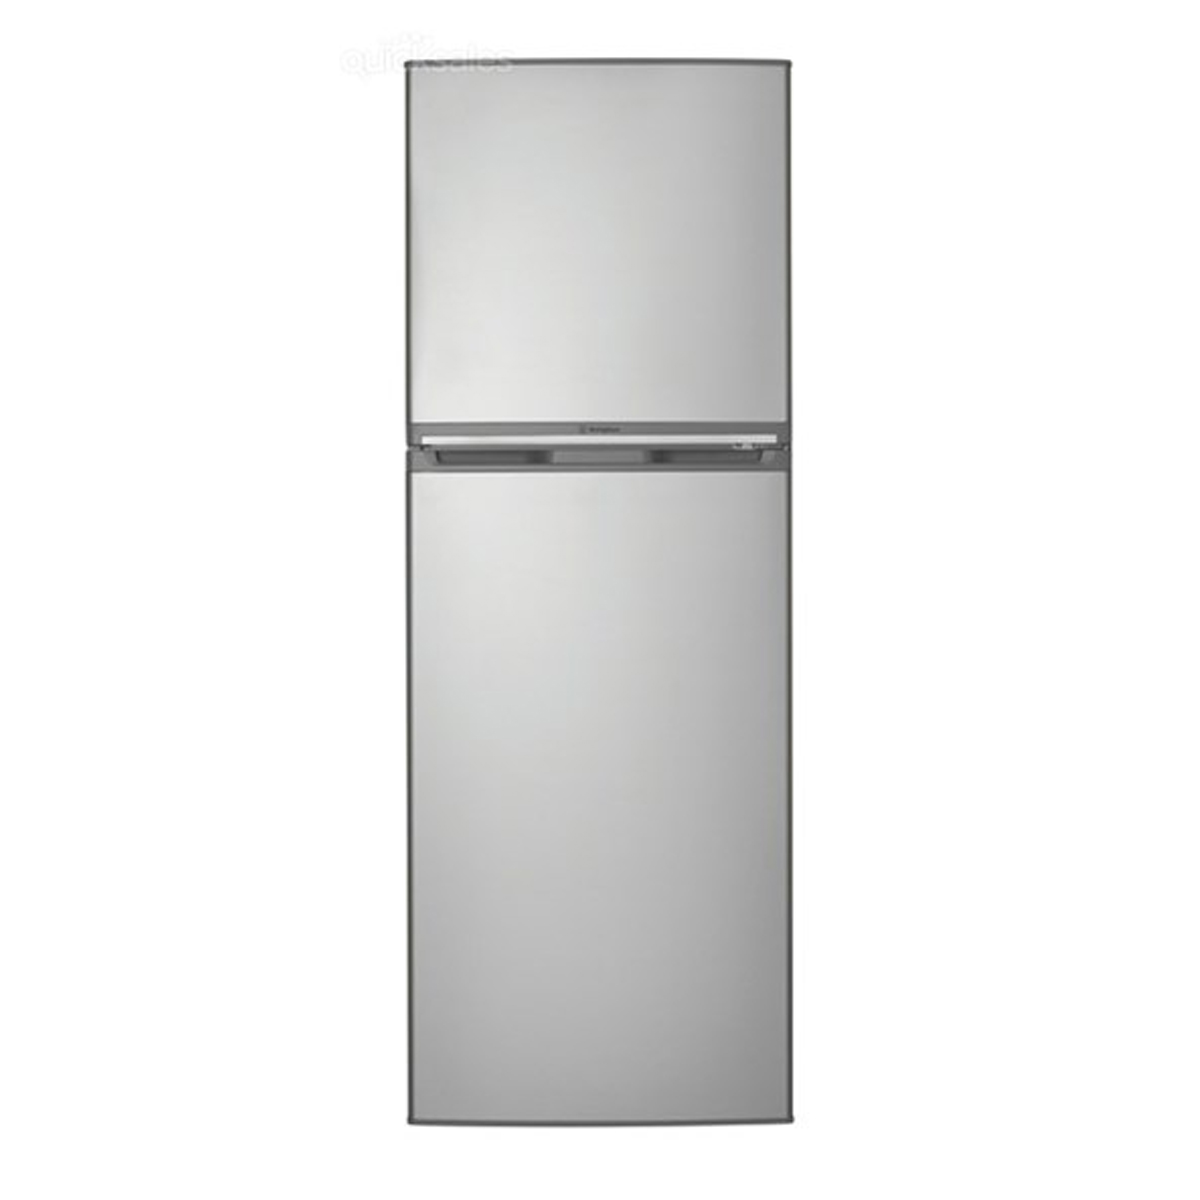 Westinghouse WTB2500PB 250L Top Mount Fridge